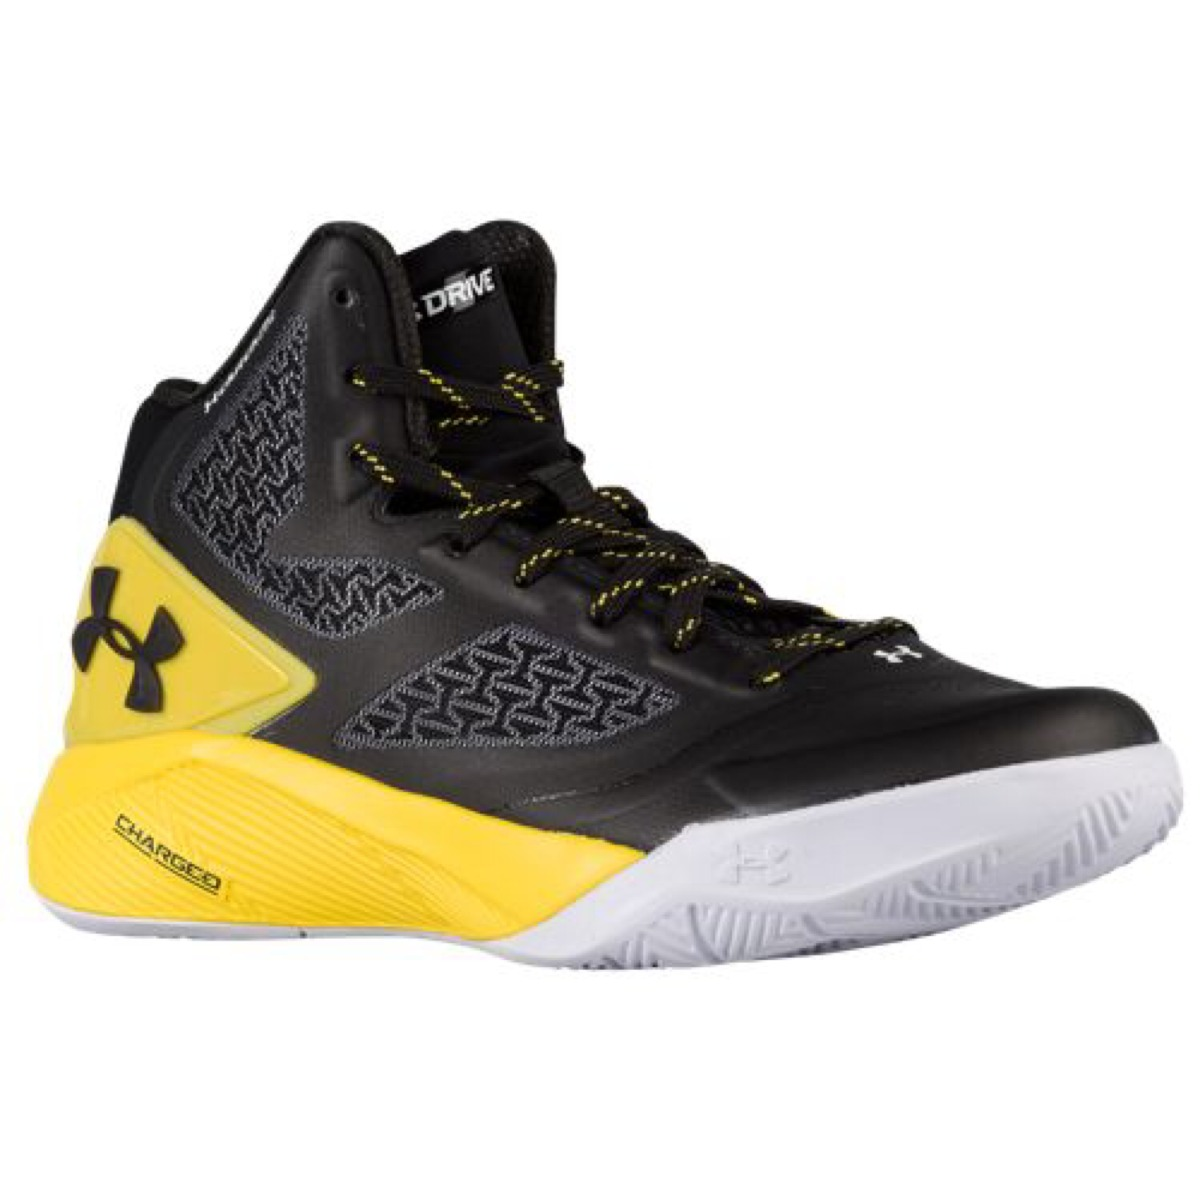 5402813e554 tenis under armour clutchfit 2. Cargando zoom.